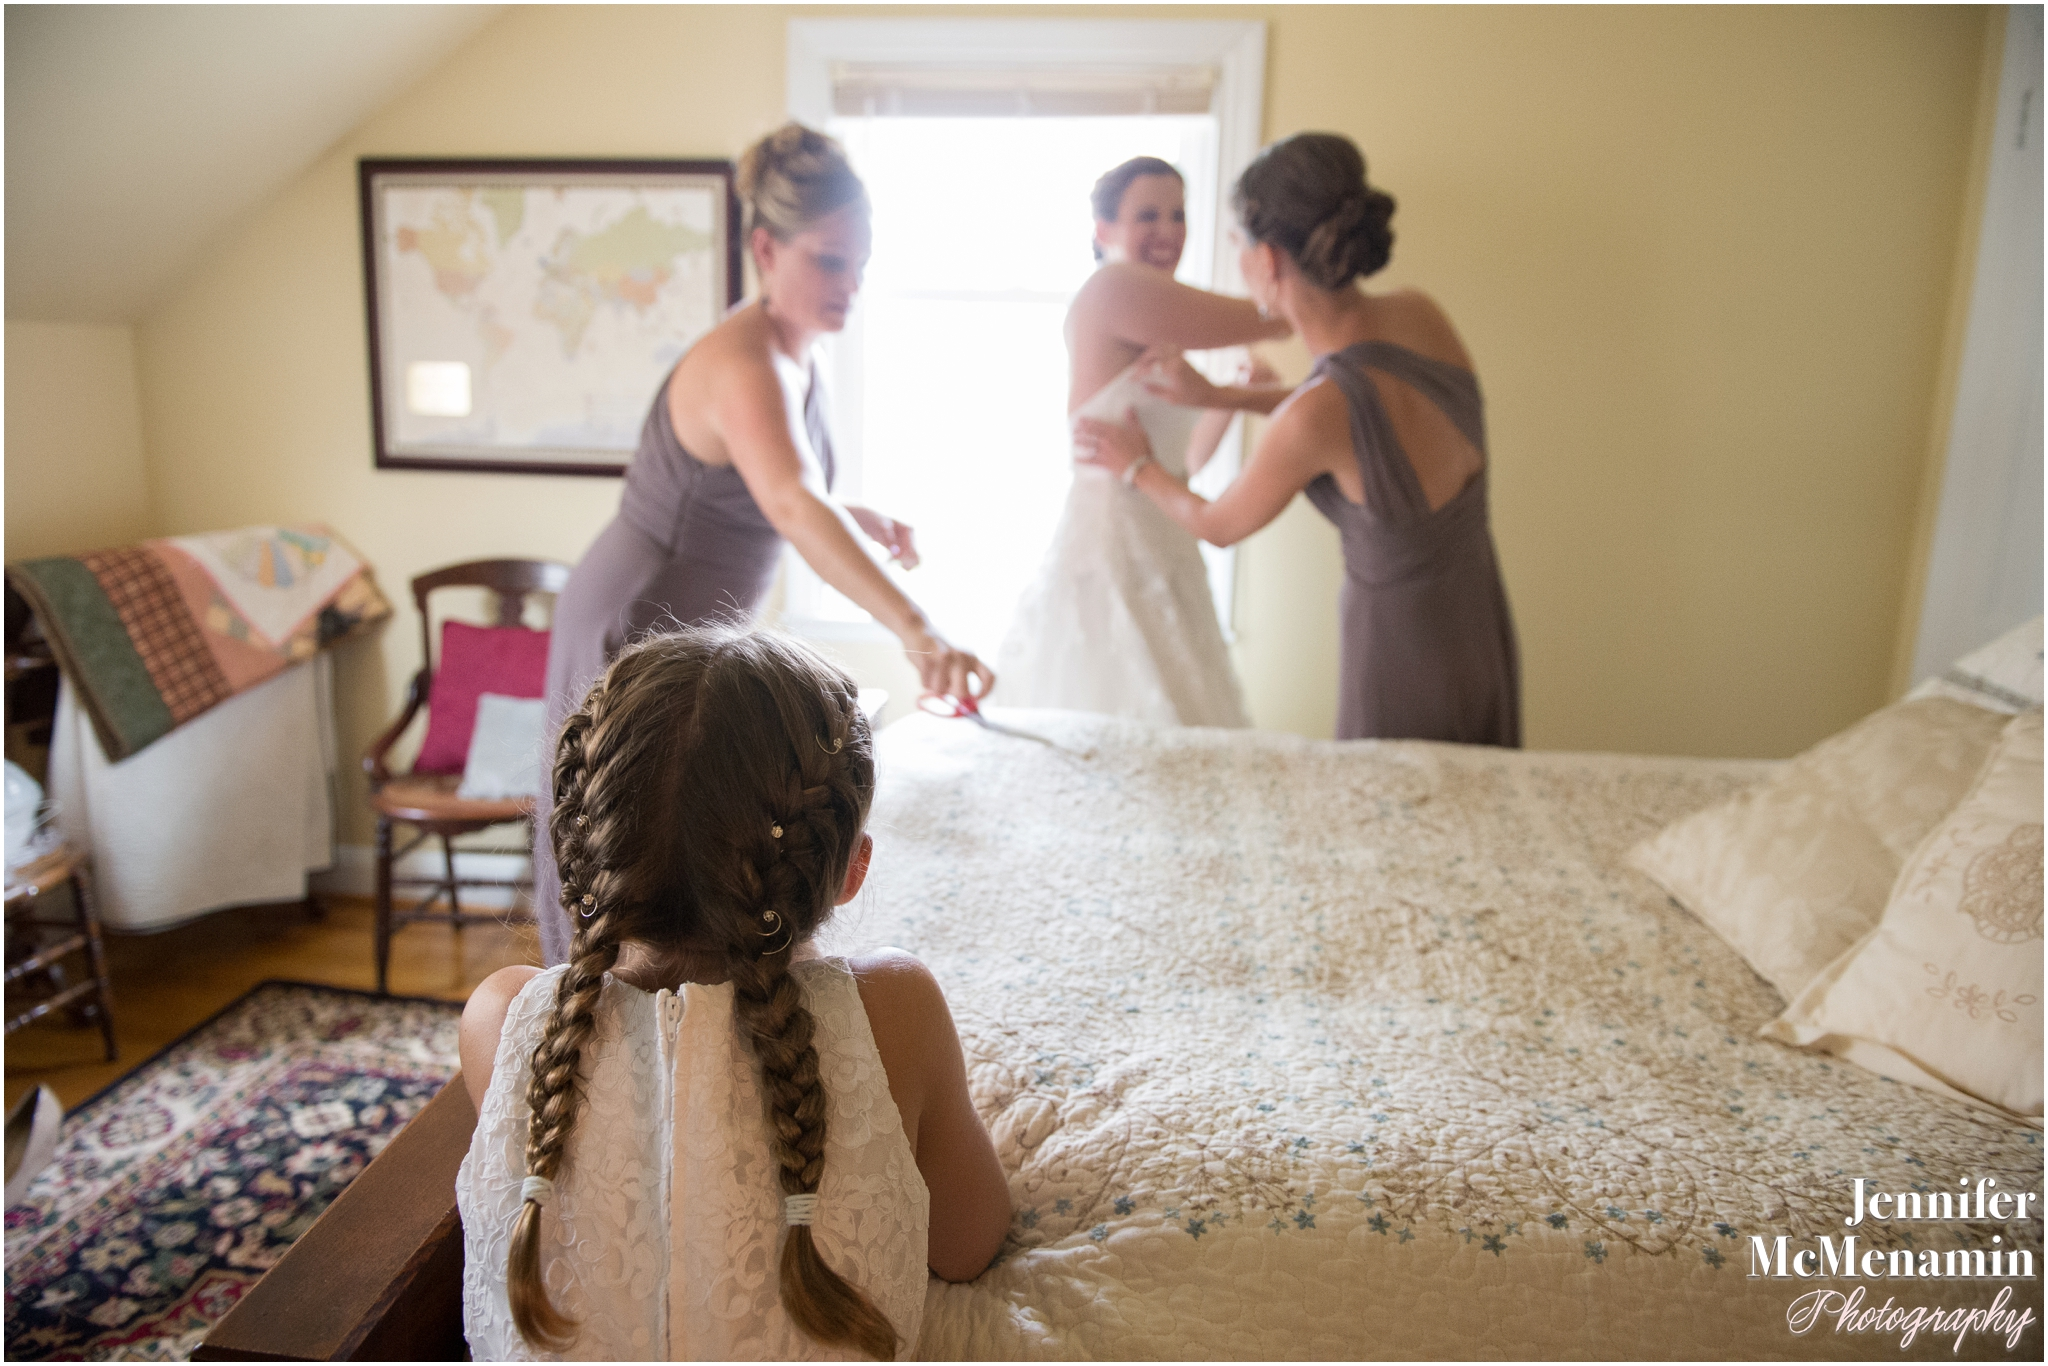 013-HenningMiller_00486-0087_JenniferMcMenaminPhotography_Evergreen-Museum-And-Carriage-House_Evergreen-wedding_Baltimore-wedding-photographer_Baltimore-wedding-photography